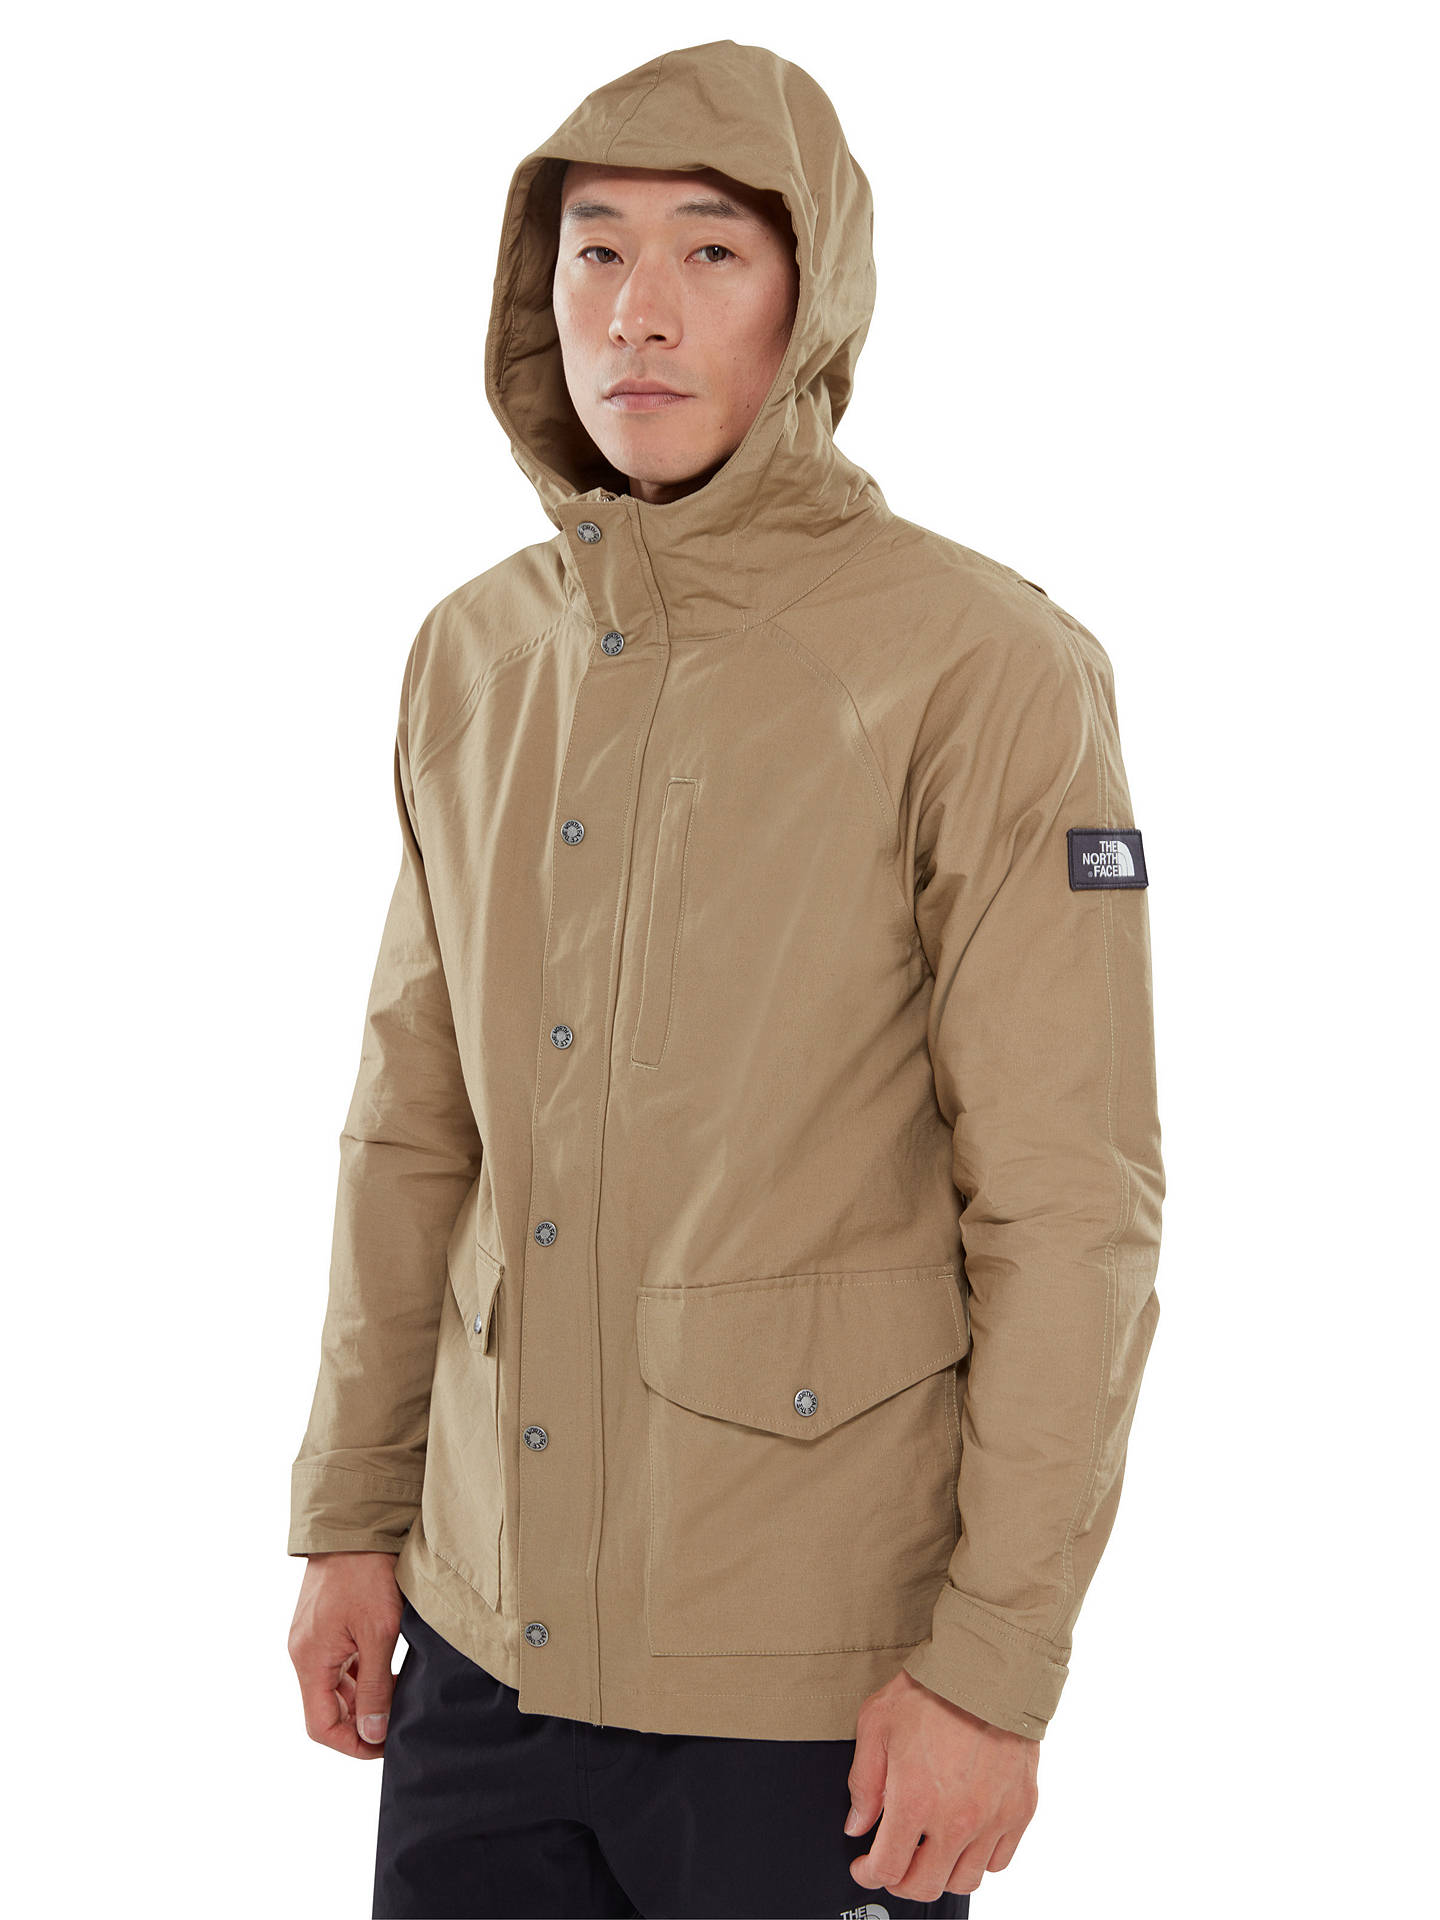 BuyThe North Face Wax Canvas Utility Men s Jacket cf2c27010